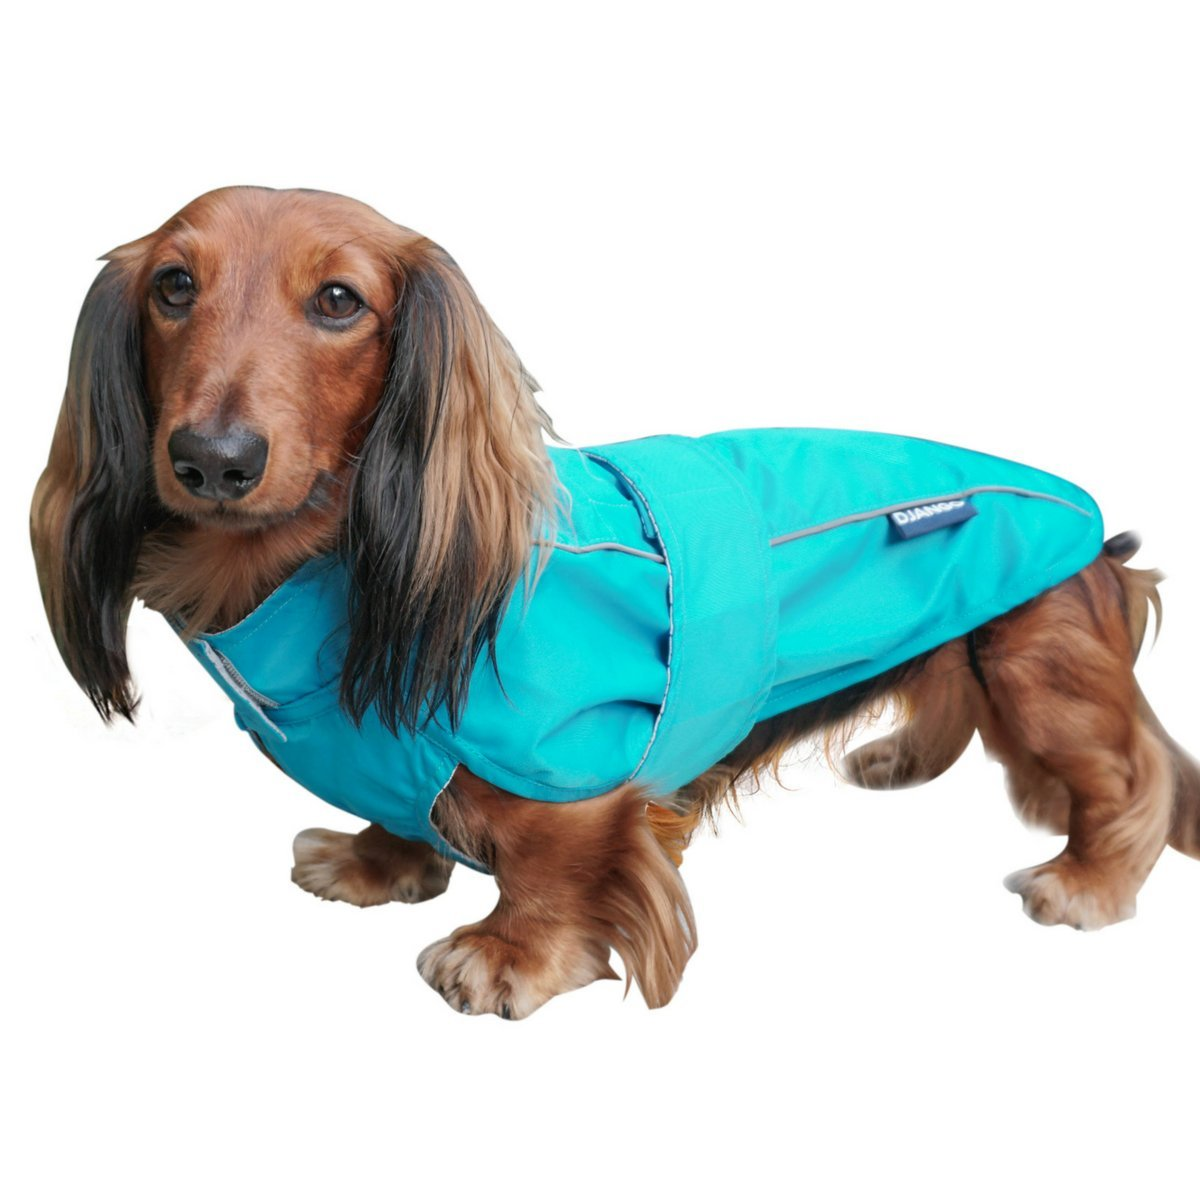 DJANGO City Slicker Water-Repellent Dog Raincoat and All-Weather Jacket with Reflective Piping (Small, Topaz Blue)